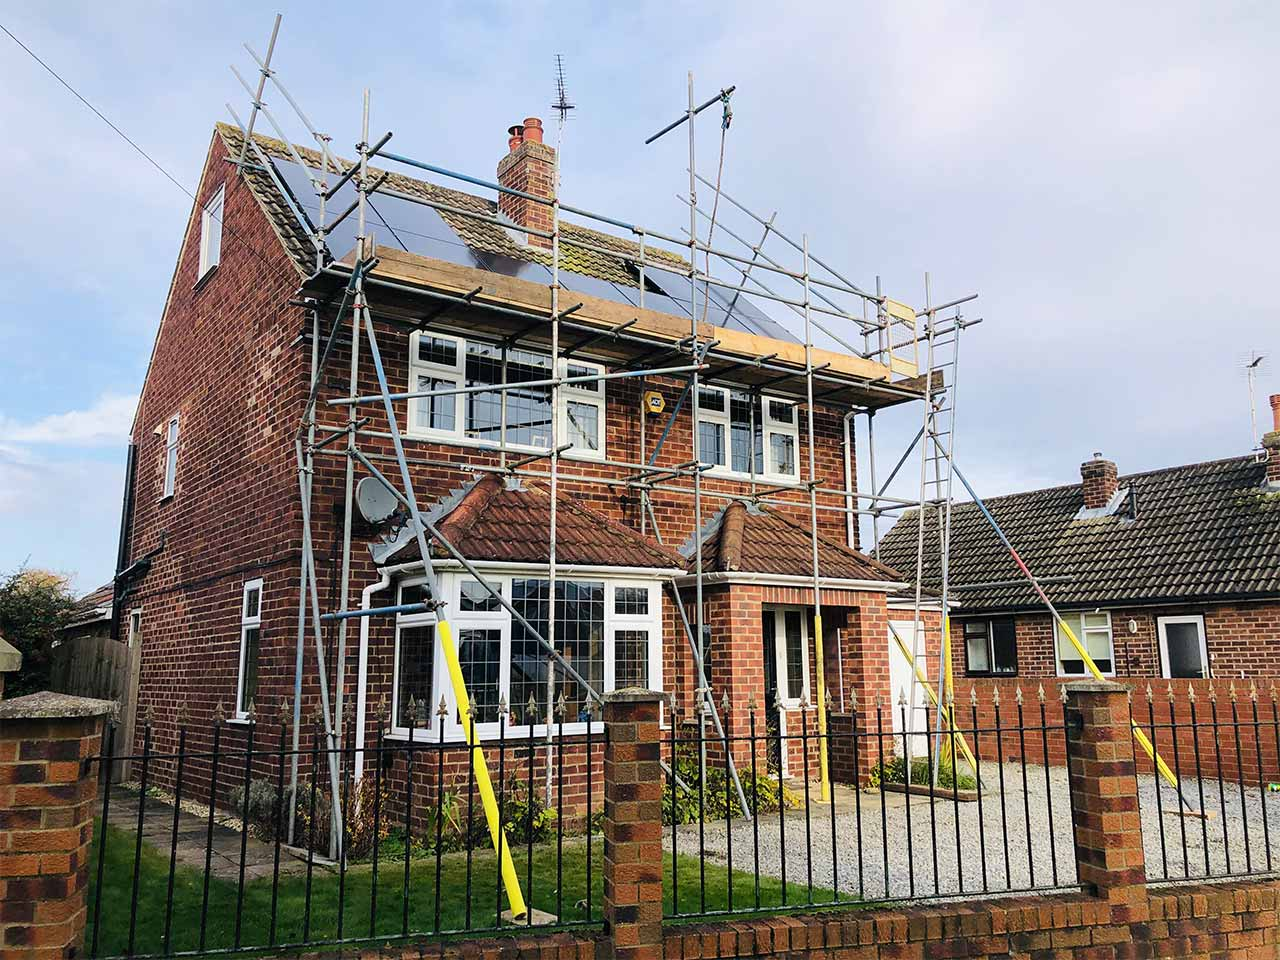 Domestic General Housing by SCAFF-CO UK scaffolding services ltd